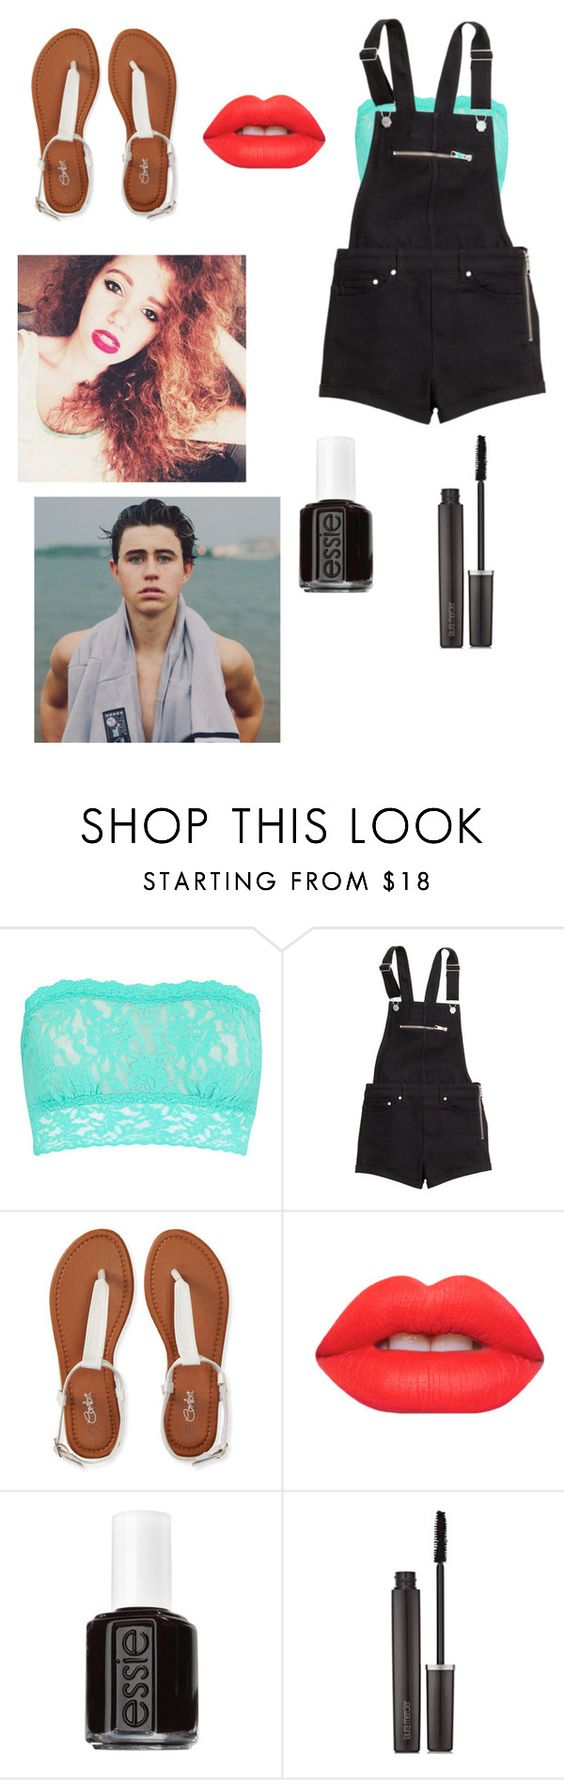 """""""Hanging with The LOX and Nash-Bash"""" by its-sarah02 ❤ liked on Polyvore featuring Hanky Panky, H&M, Aéropostale, Lime Crime, Essie, Laura Mercier, women's clothing, women's fashion, women and female"""